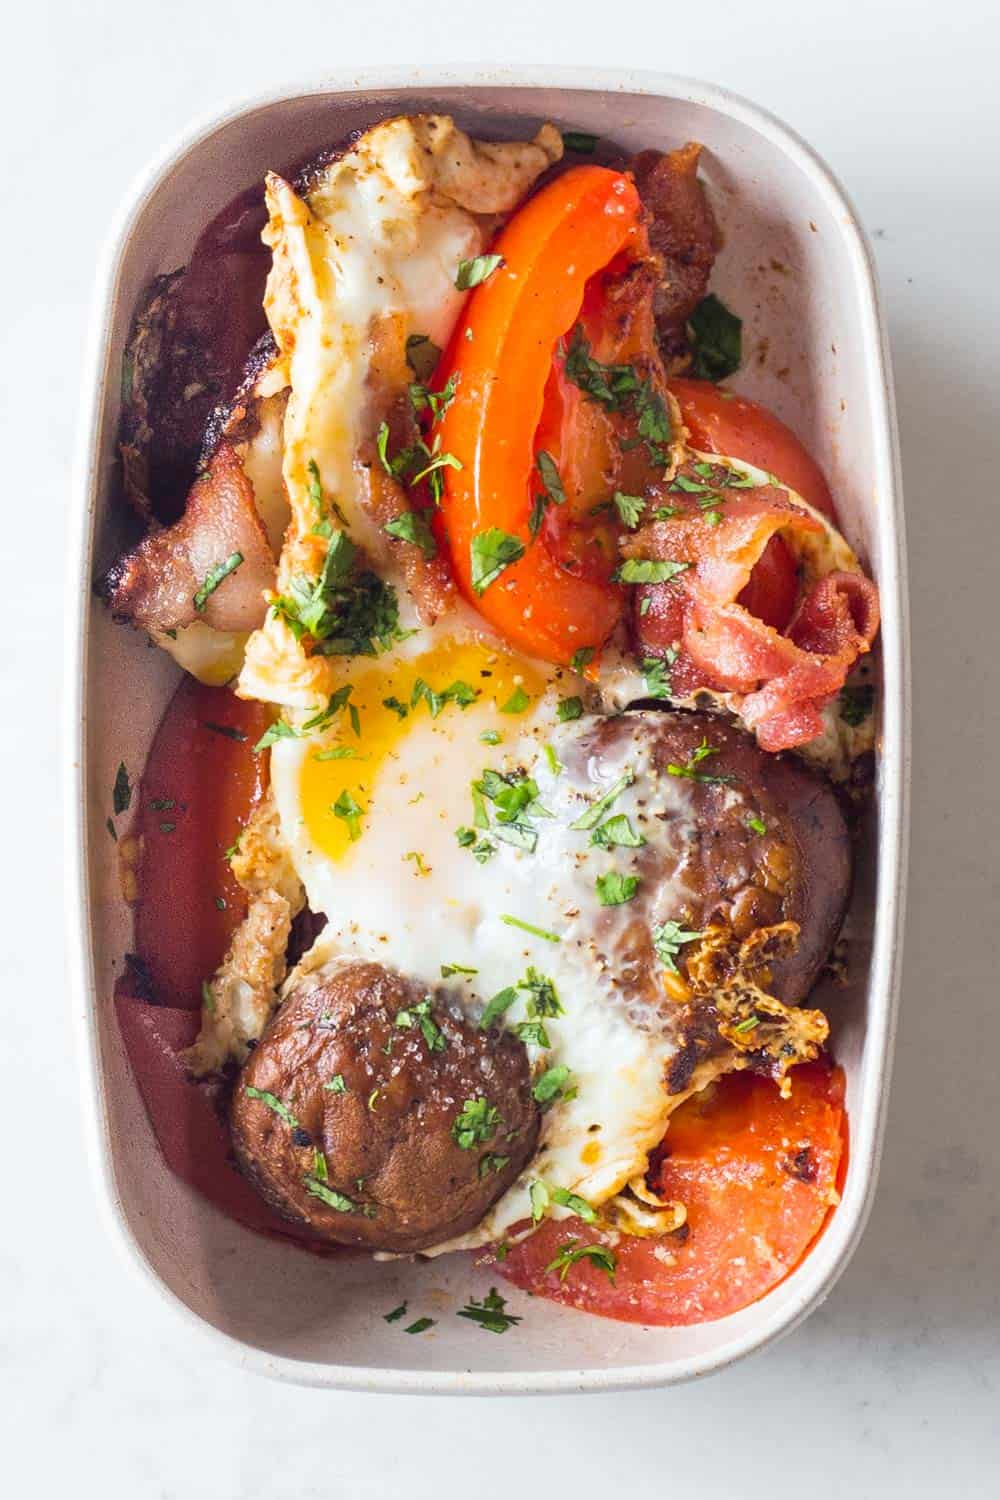 A healthy Paleo breakfast for your Paleo Meal Plan - bacon, tomato, mushrooms, eggs and parsley.